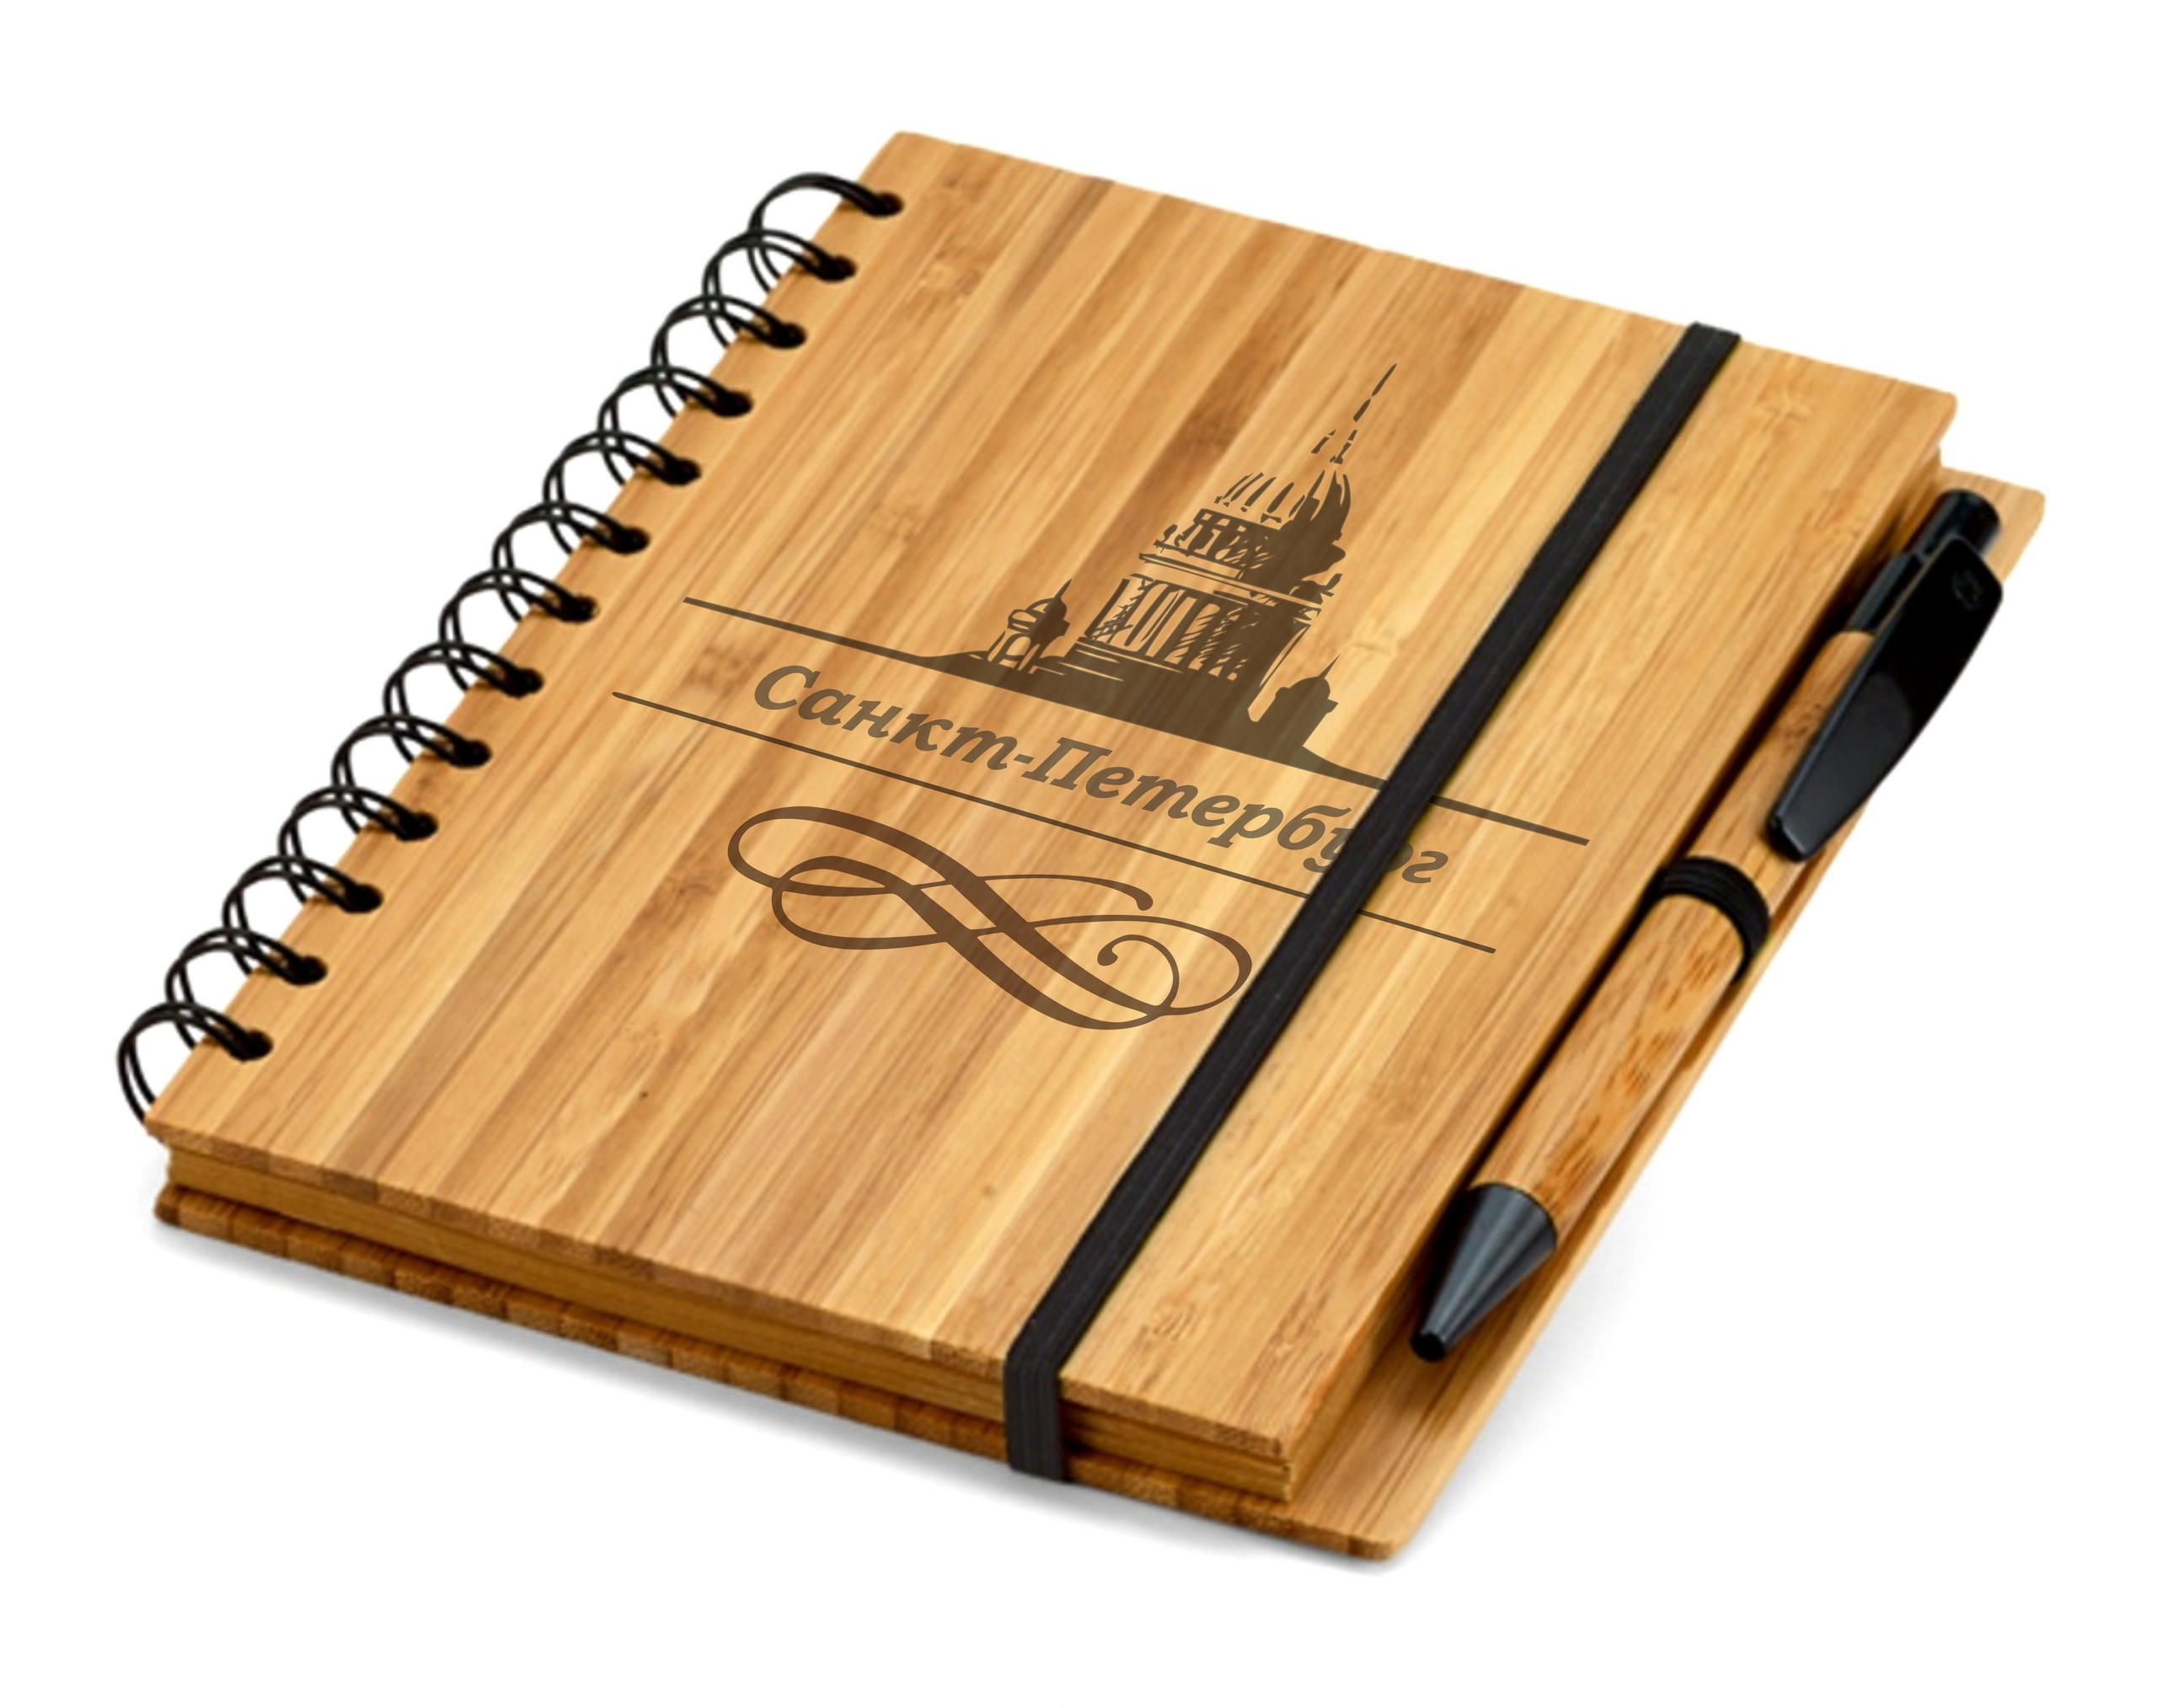 Laser Cut Engrave Notepad Cover Saint Petersburg (Санкт-Петербург) Free Vector